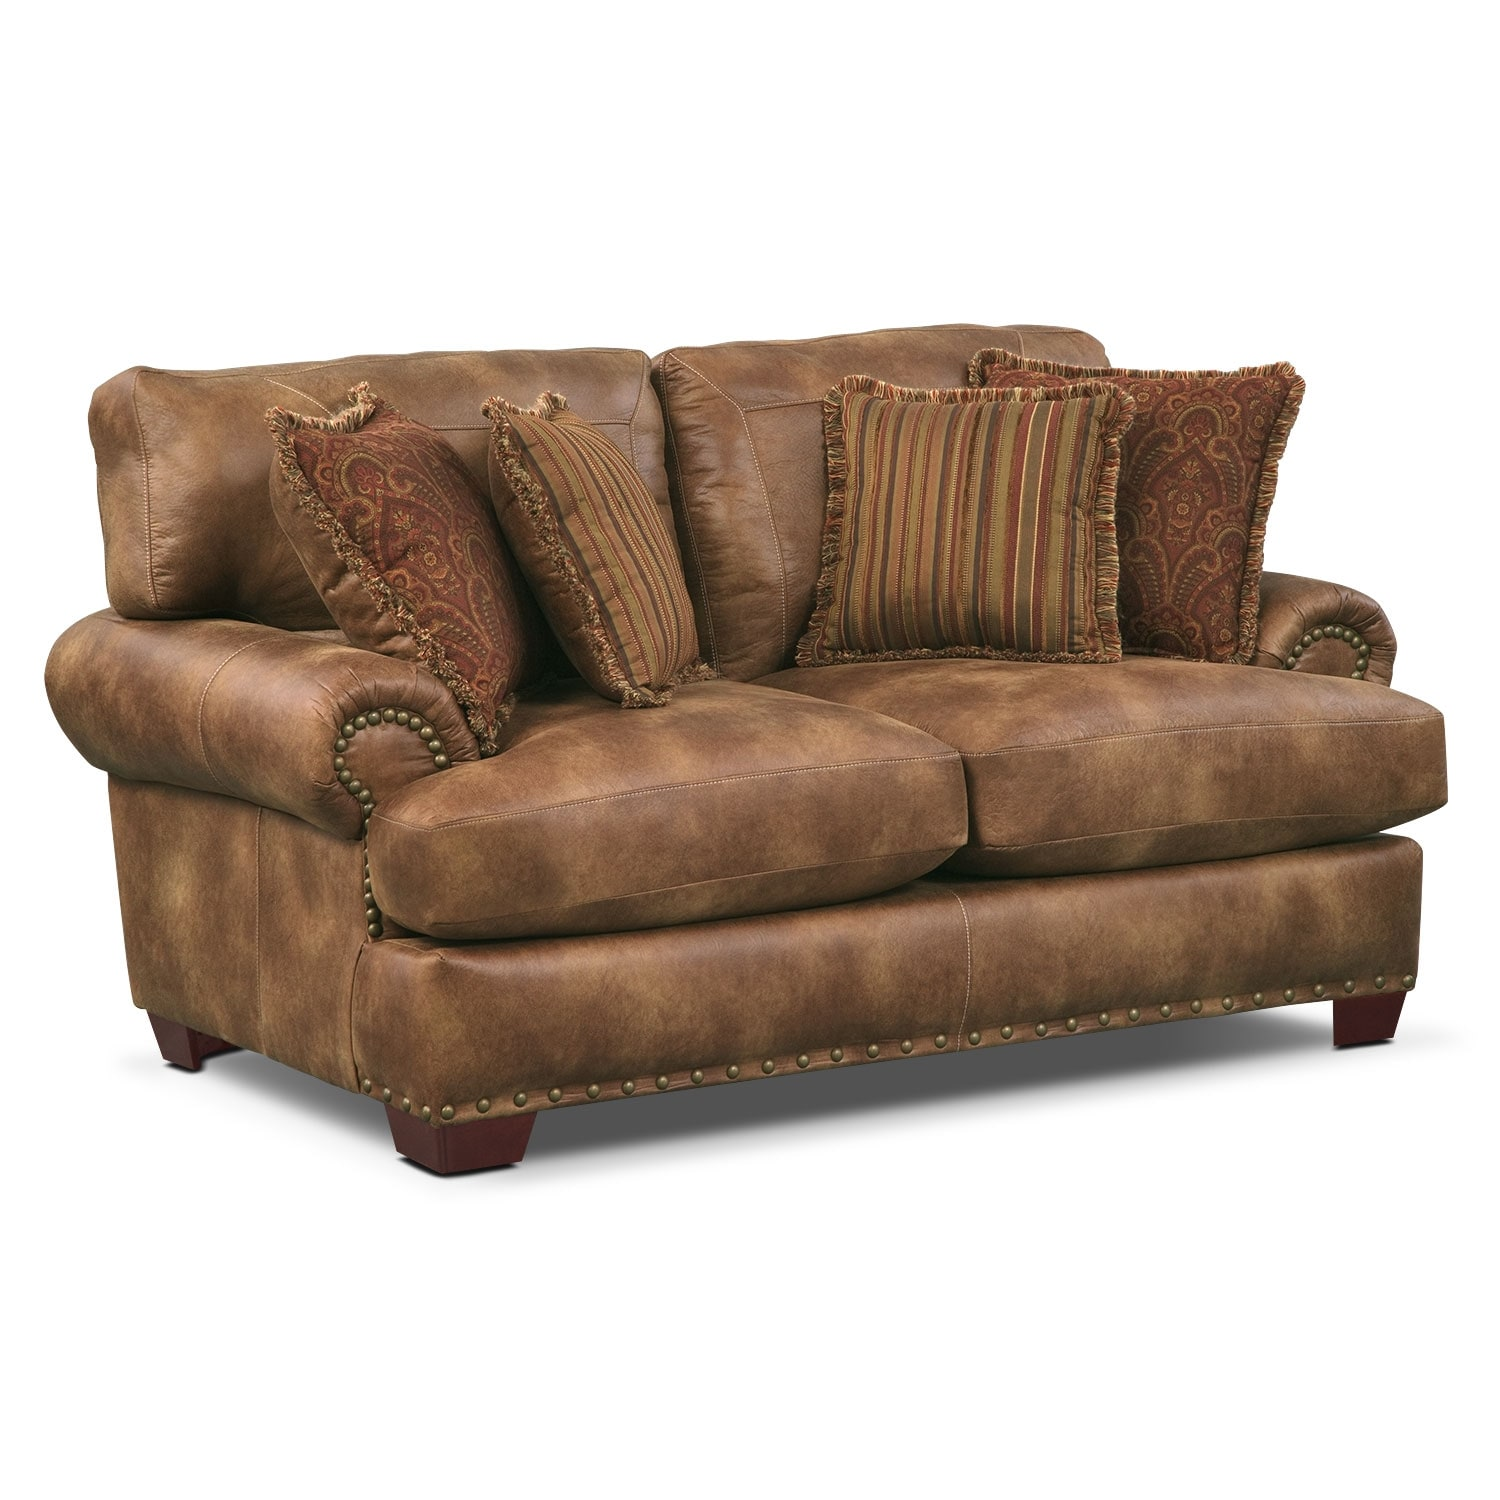 Living Room Furniture - Burlington Loveseat